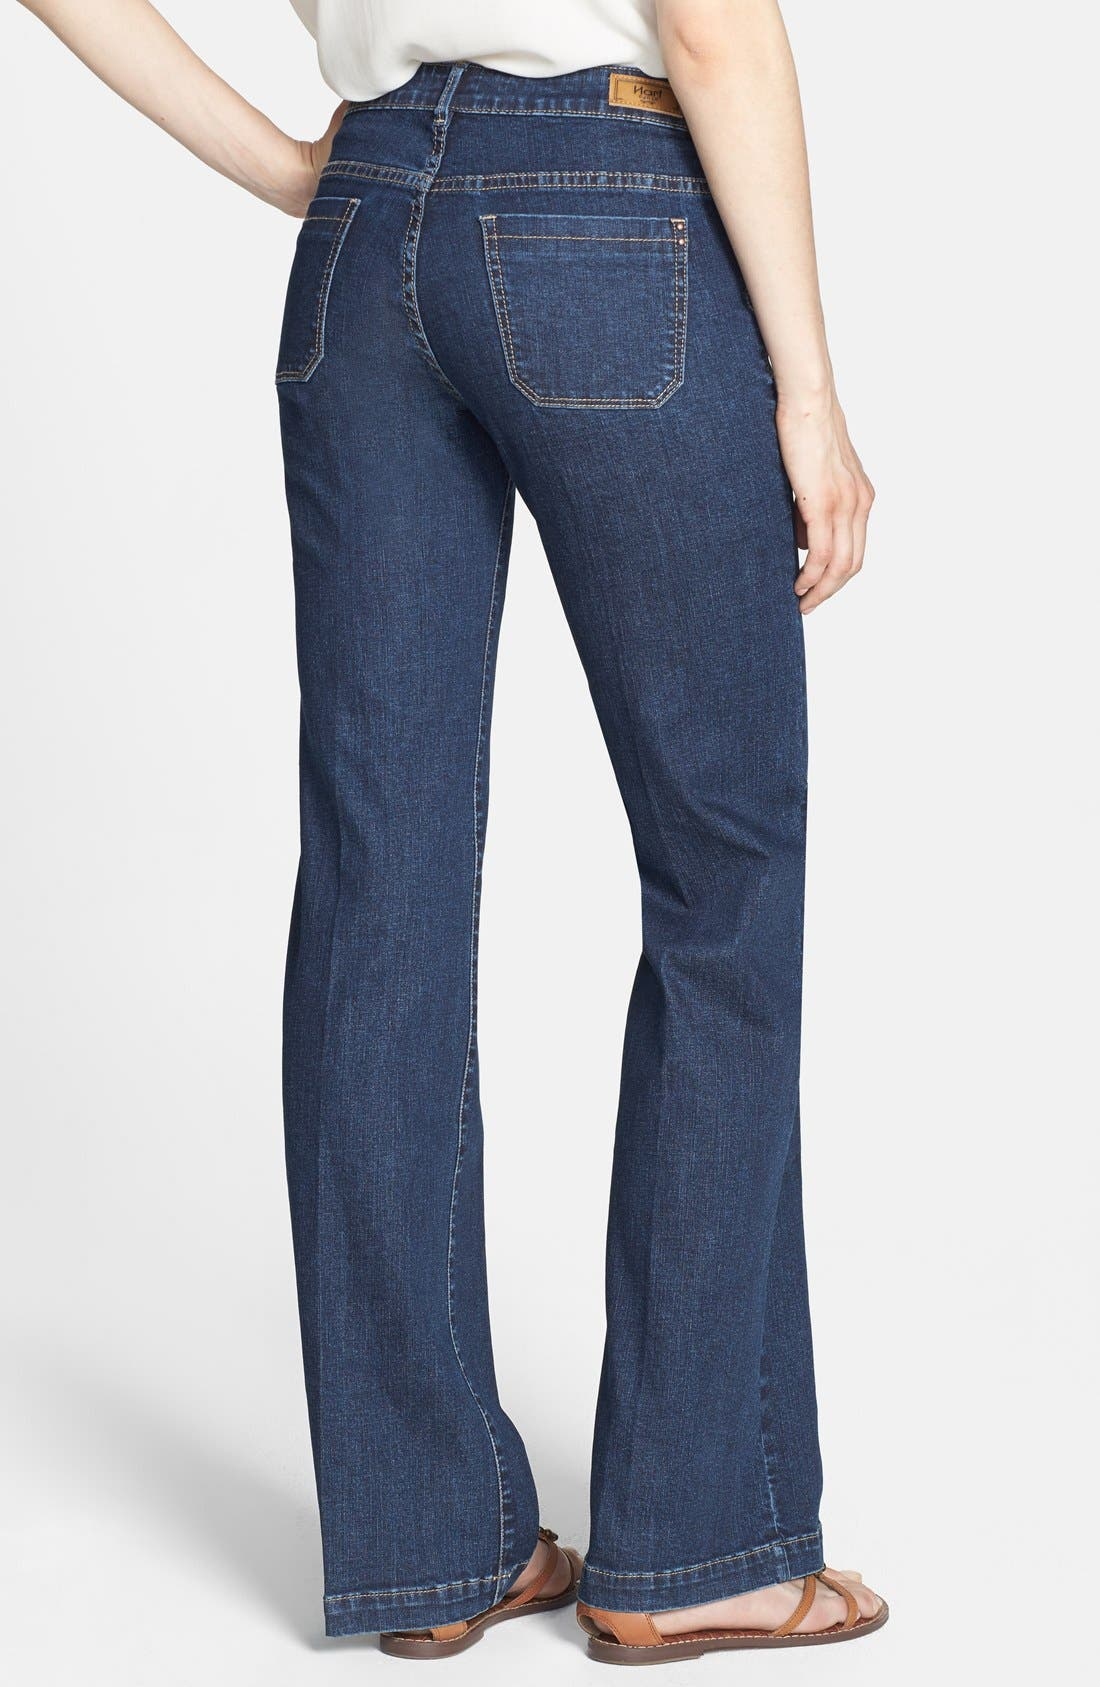 Alternate Image 2  - HART Denim 'Pheona' Wide Leg Trouser Jeans (Carbon) (Juniors)